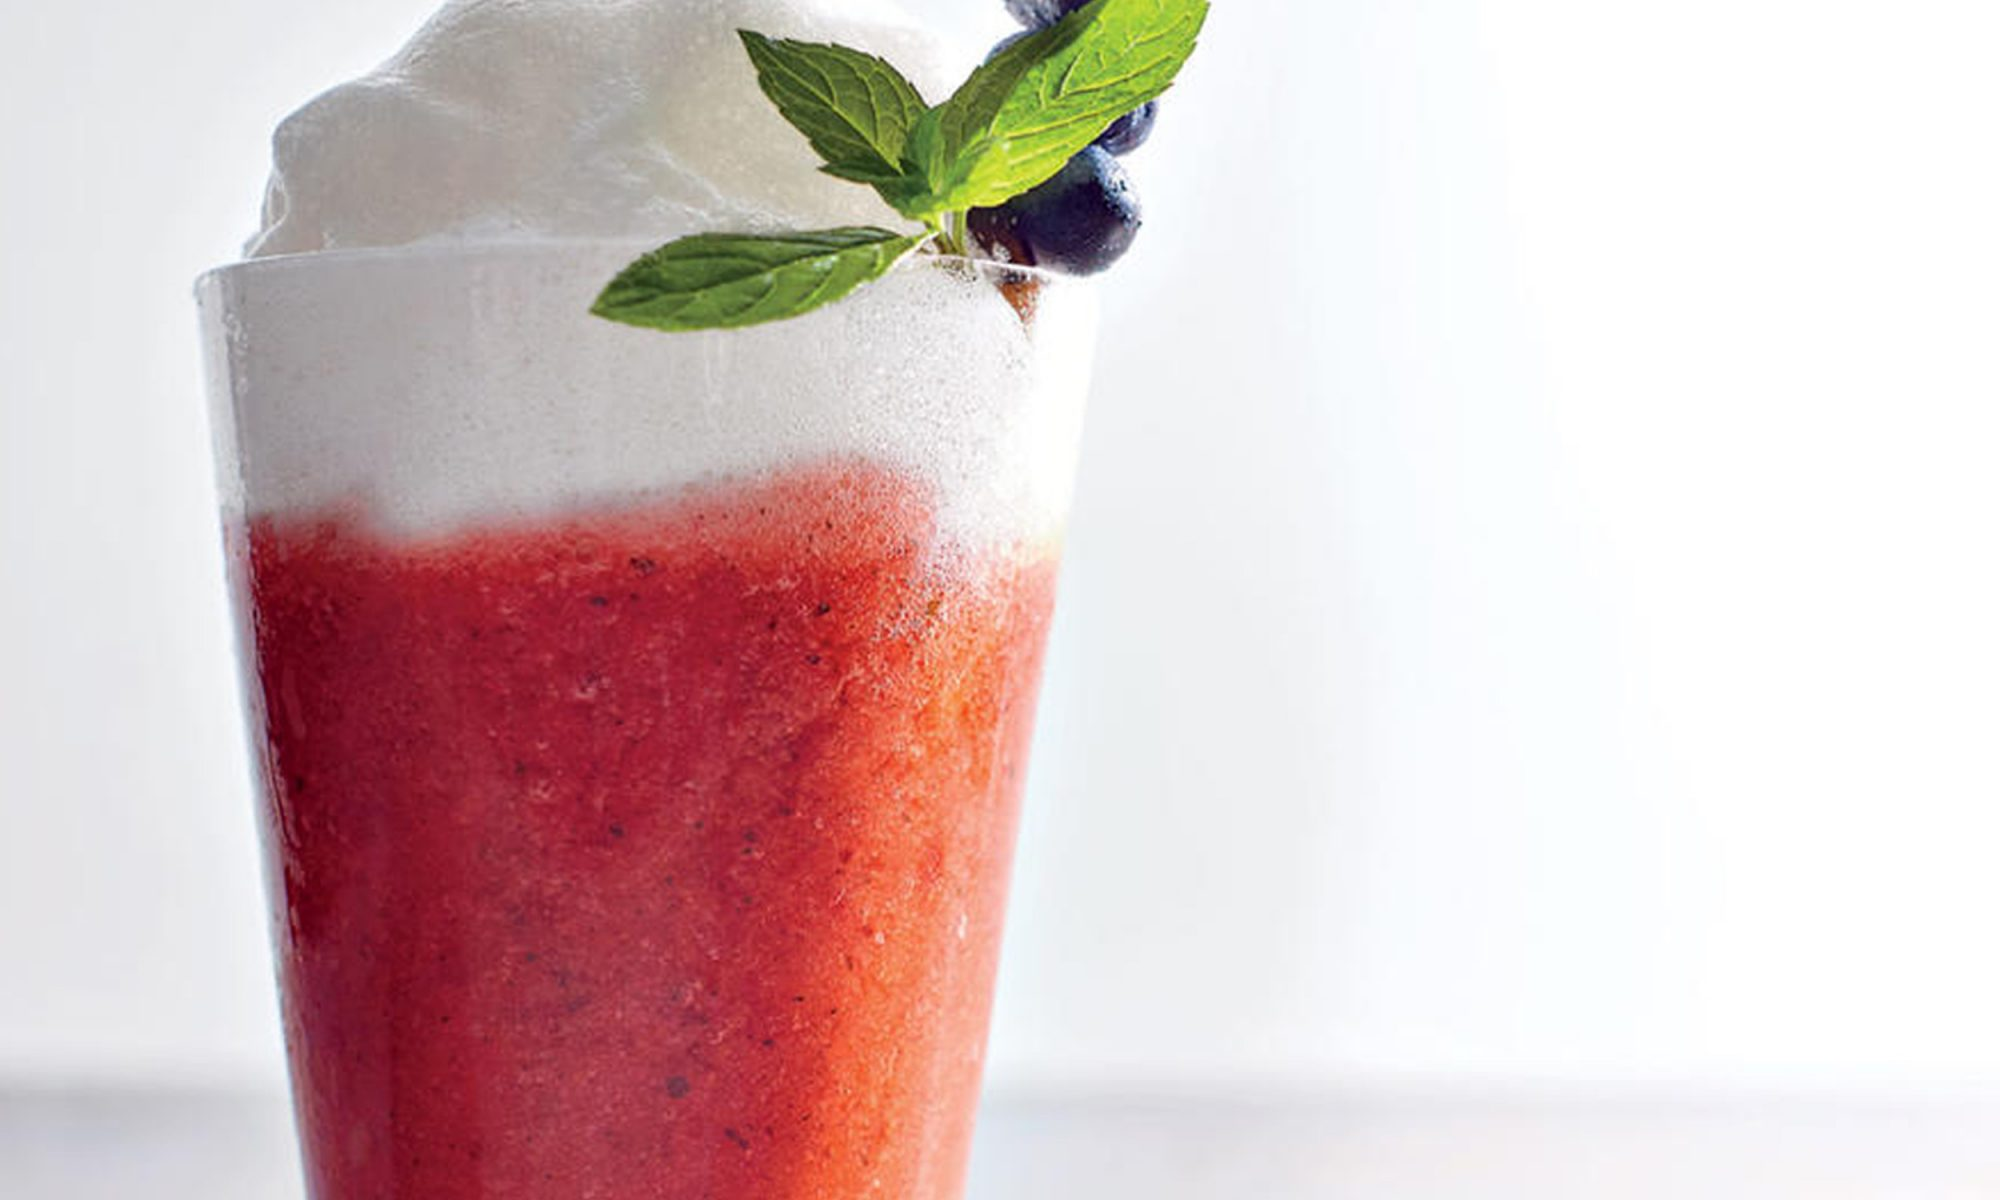 EC: Roasted Strawberry Margaritas with Aquafaba Whip